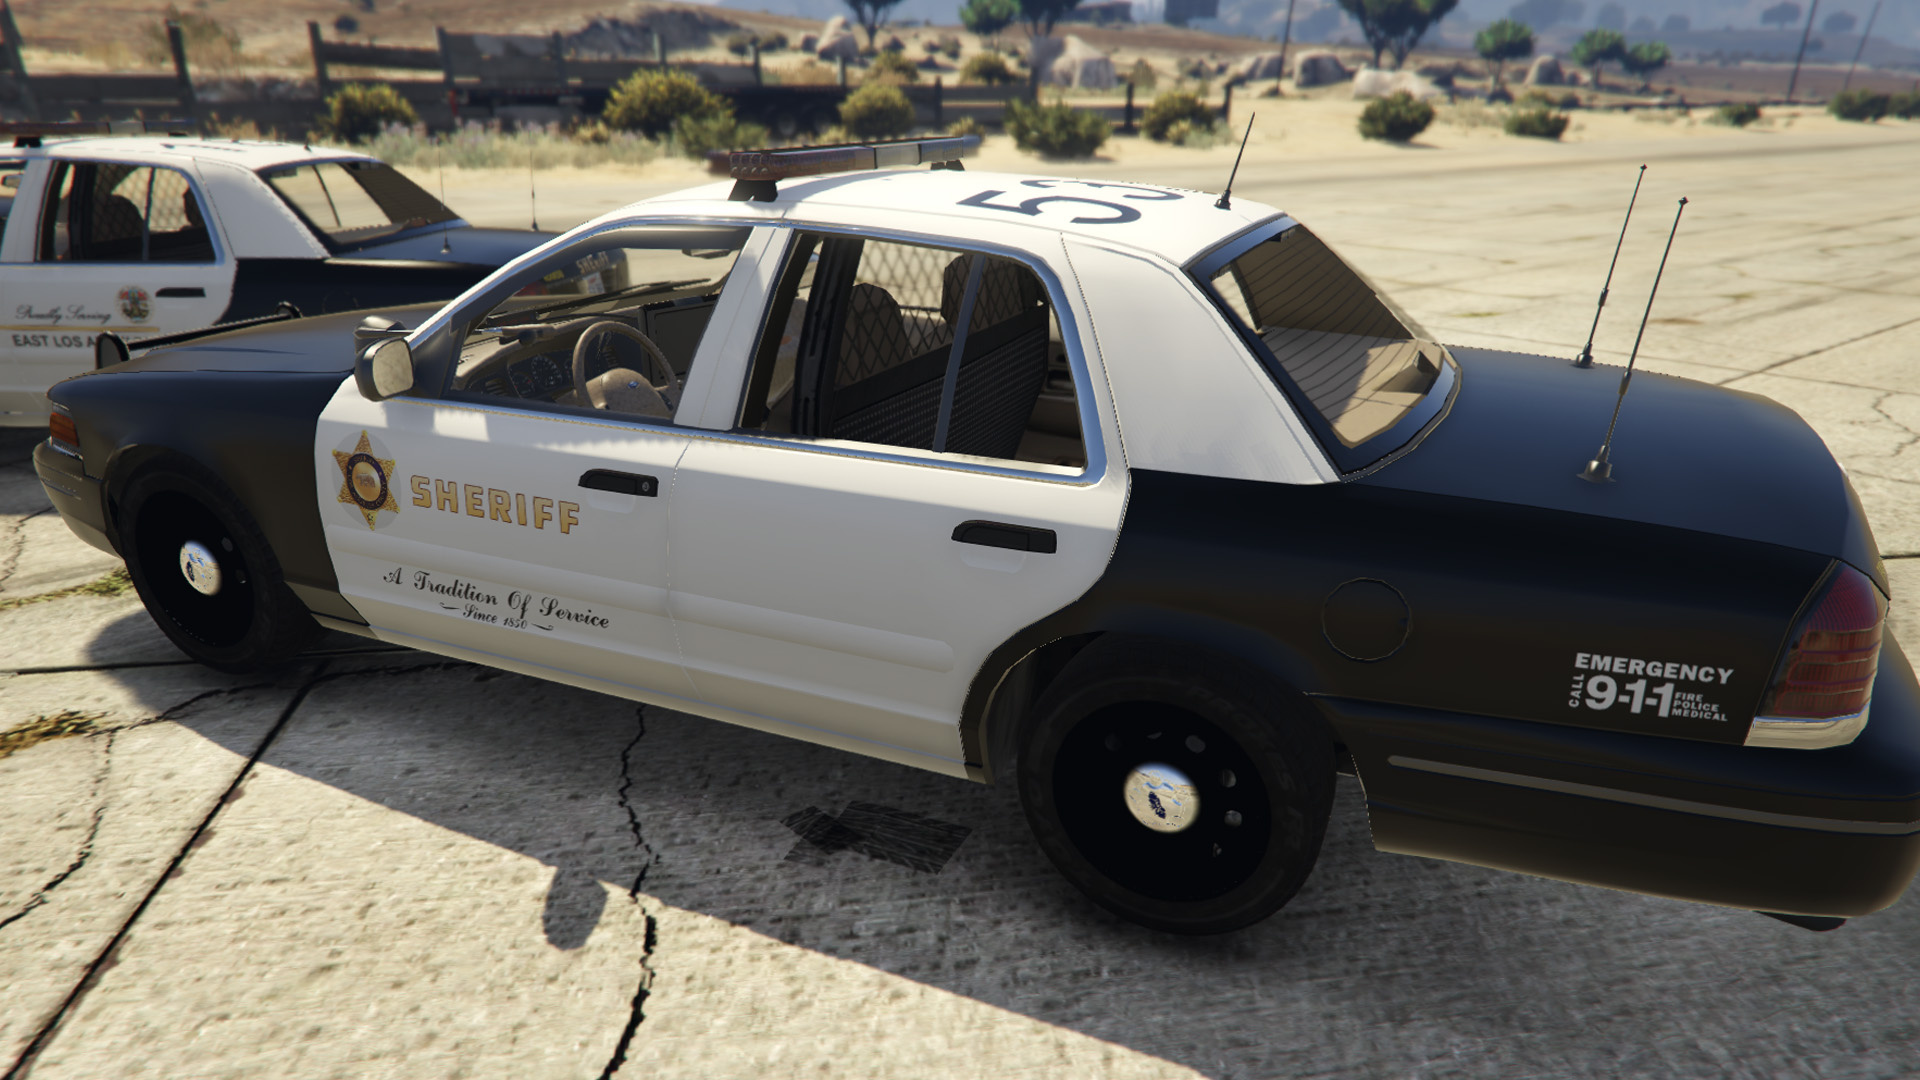 Lapd Lasd Chip Liveries For 1999 Ford Crown Victoria Gta5 Mods Com